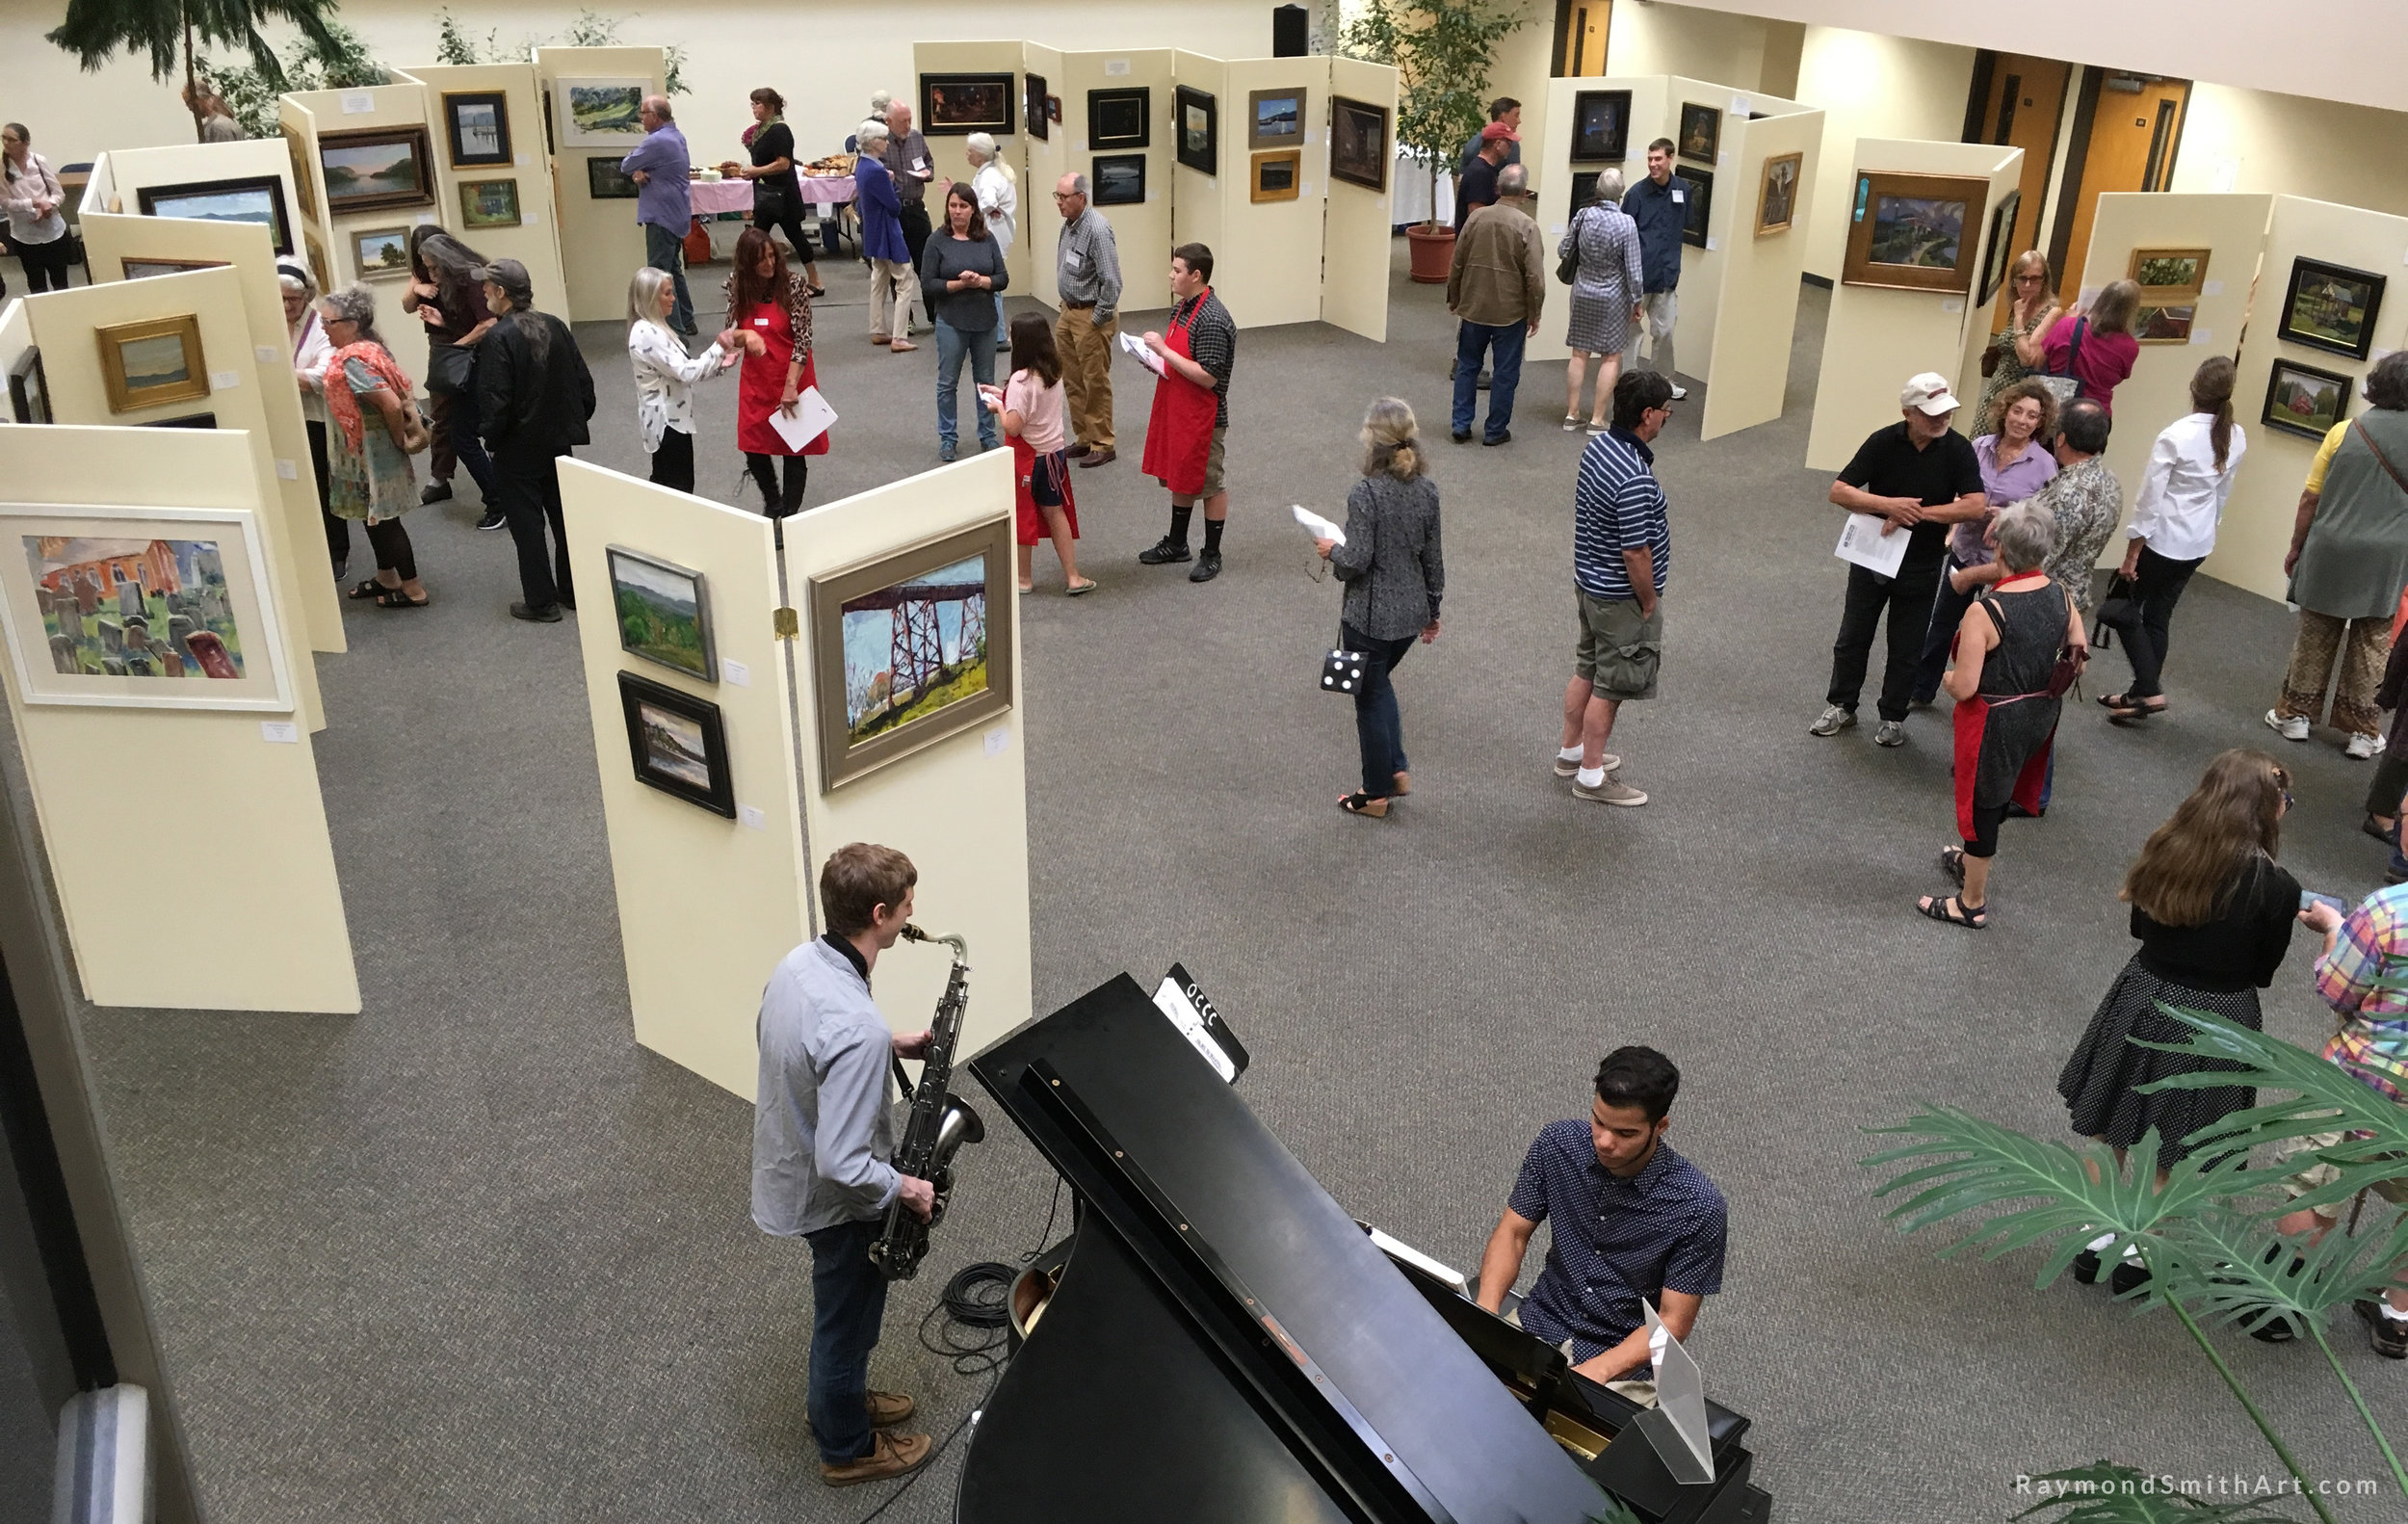 Showtime for the Hudson Valley Plein Air Festival at SUNY College, Middletown, NY